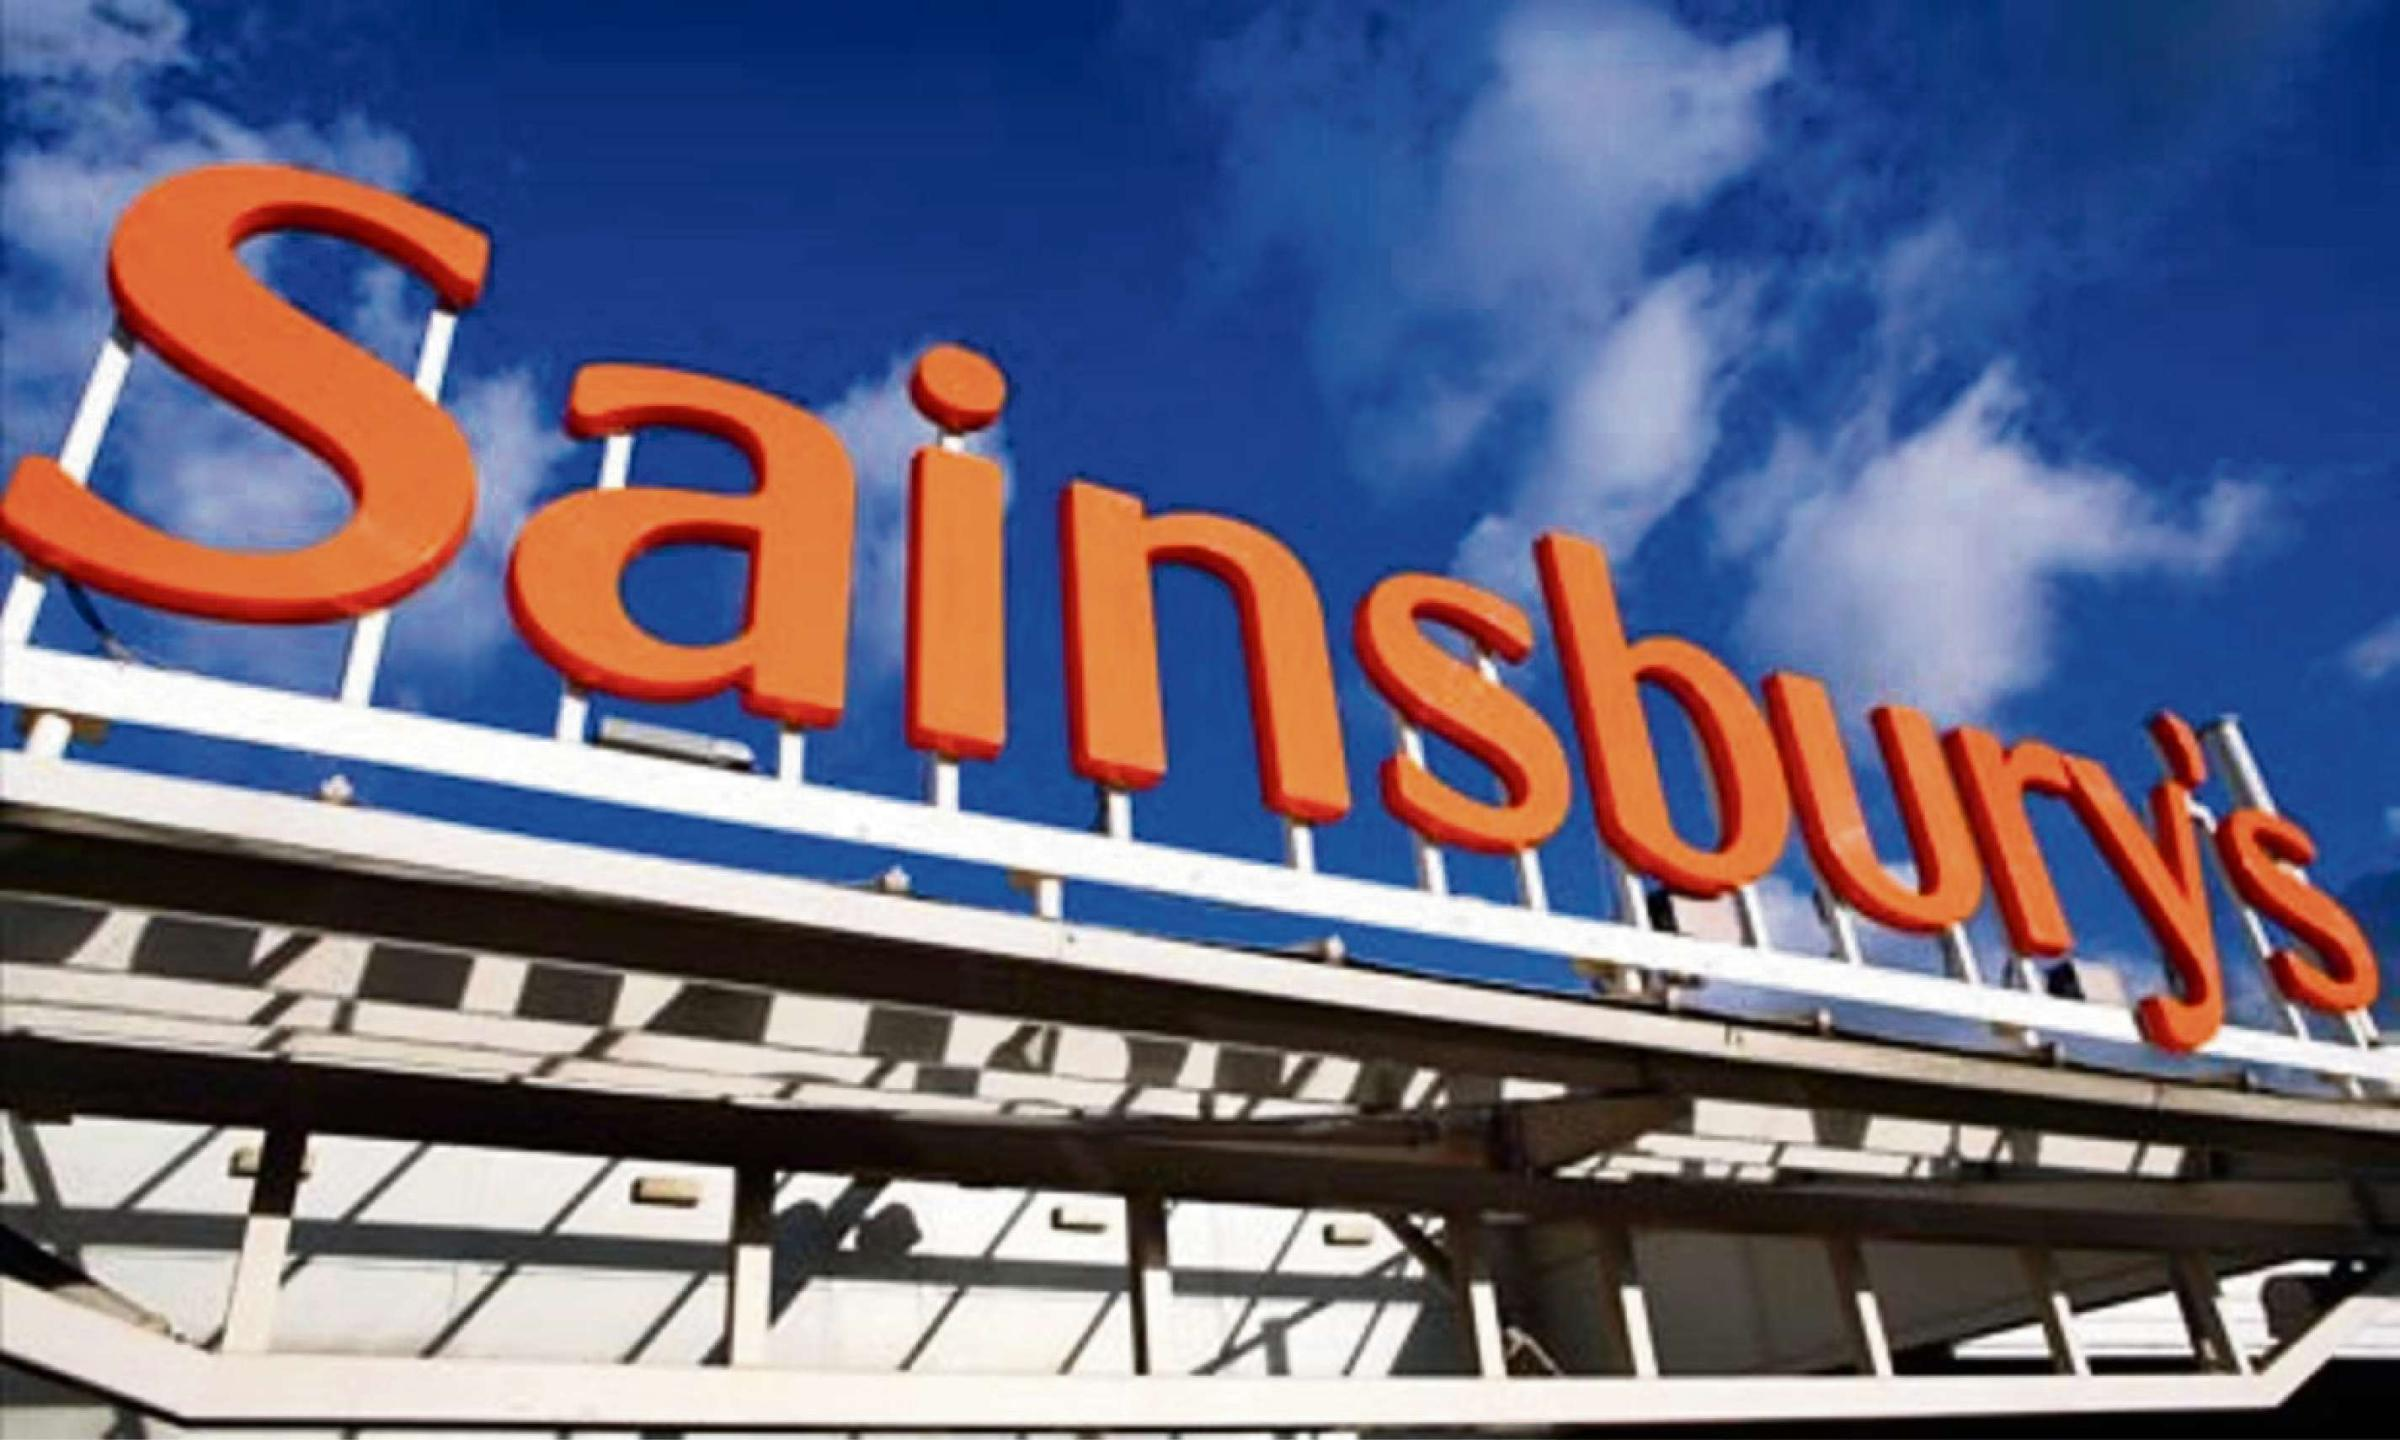 New sainsburys store for kendal agreed by councillors but concern new sainsburys store for kendal agreed by councillors but concern over 4000 cars a day lancashire telegraph falaconquin